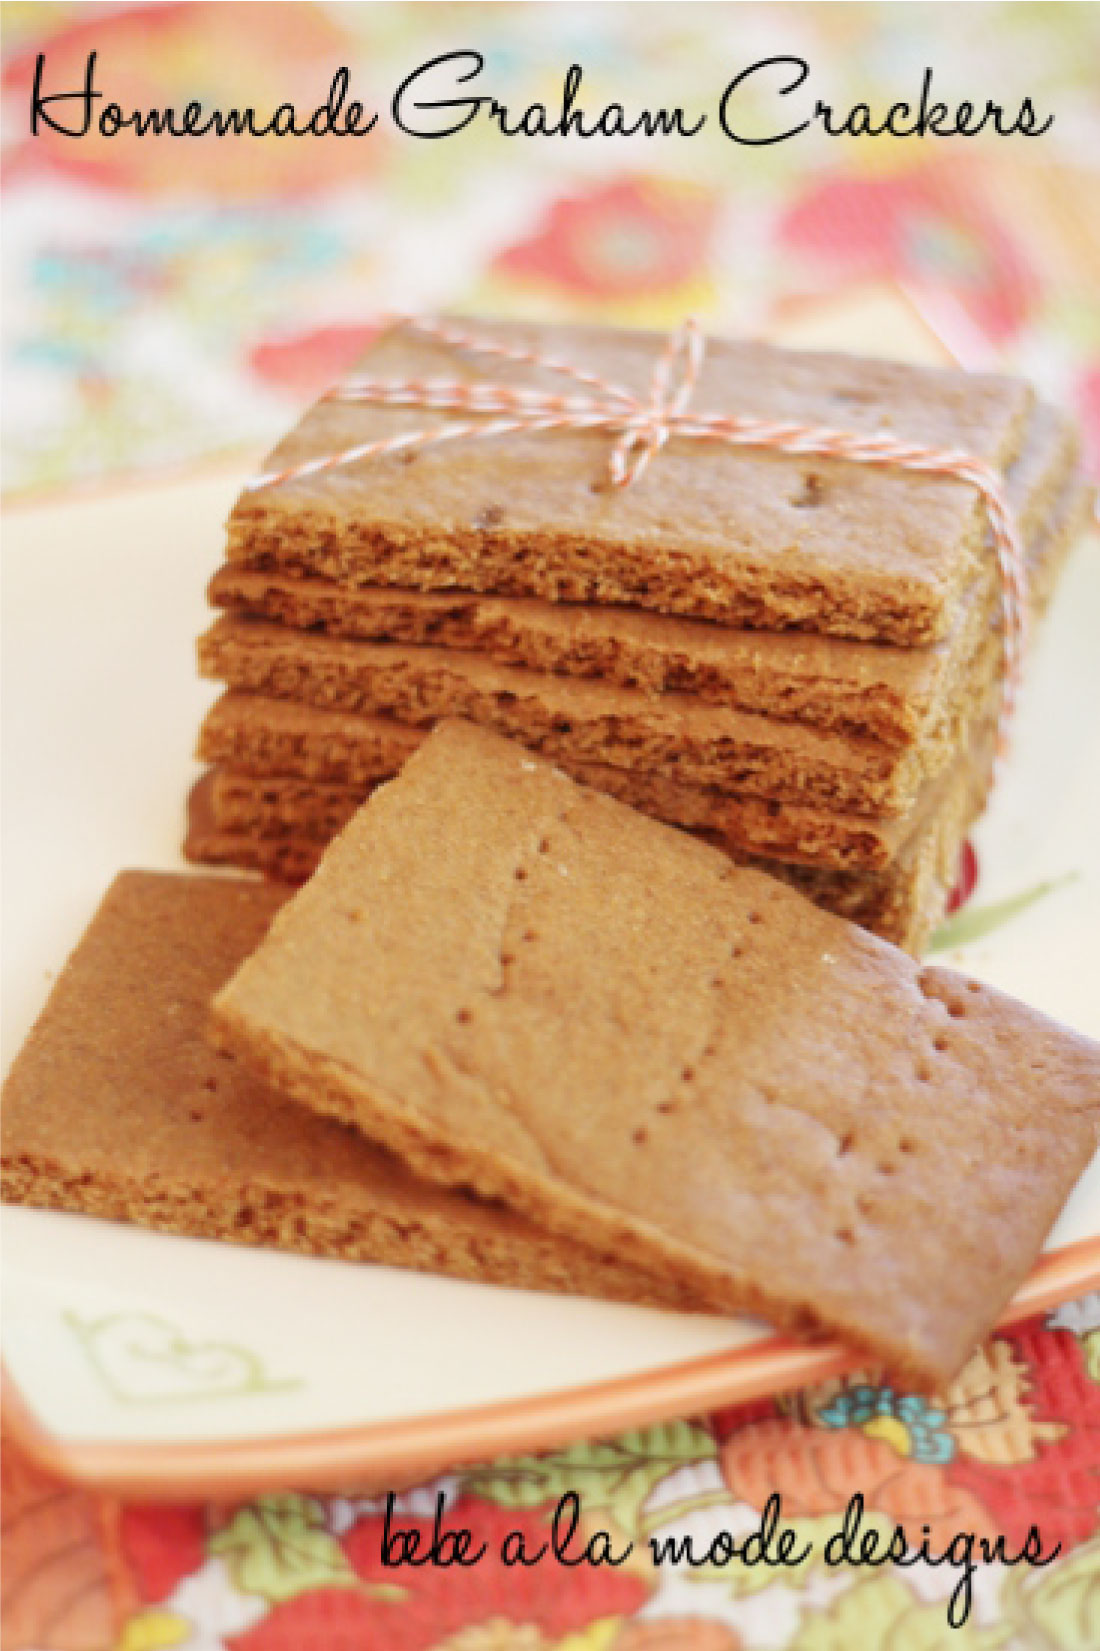 Homemade Graham Crackers- make your own from home.